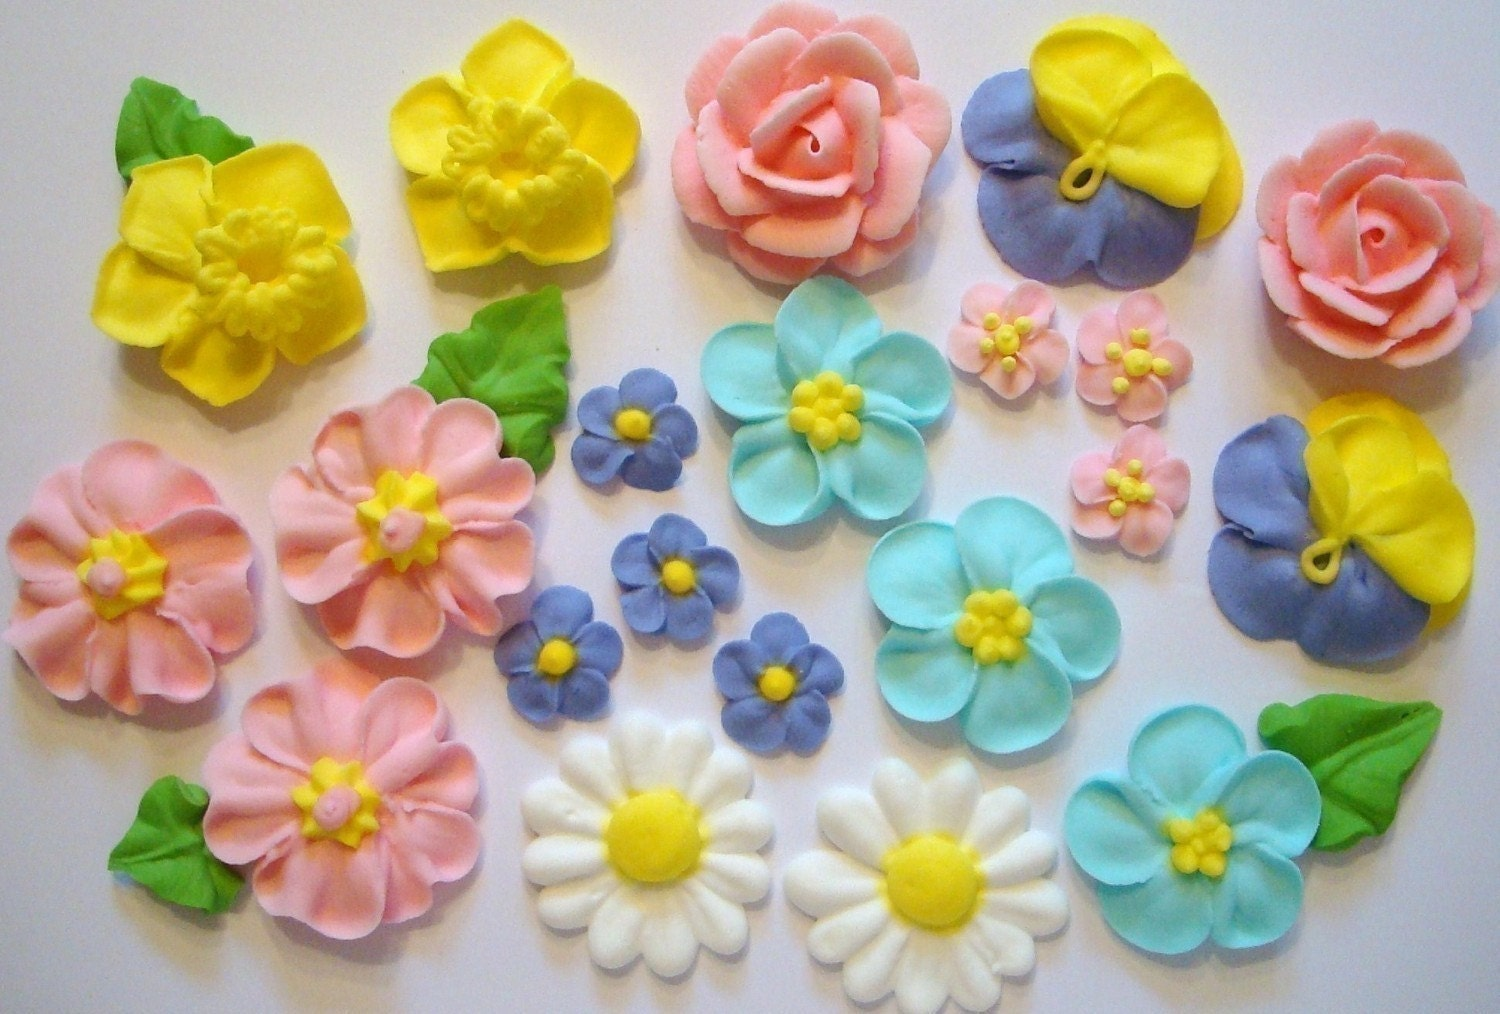 Modern Cake Decoration With Royal Icing : LOT of 100 Royal Icing Flowers for Cake Decorating